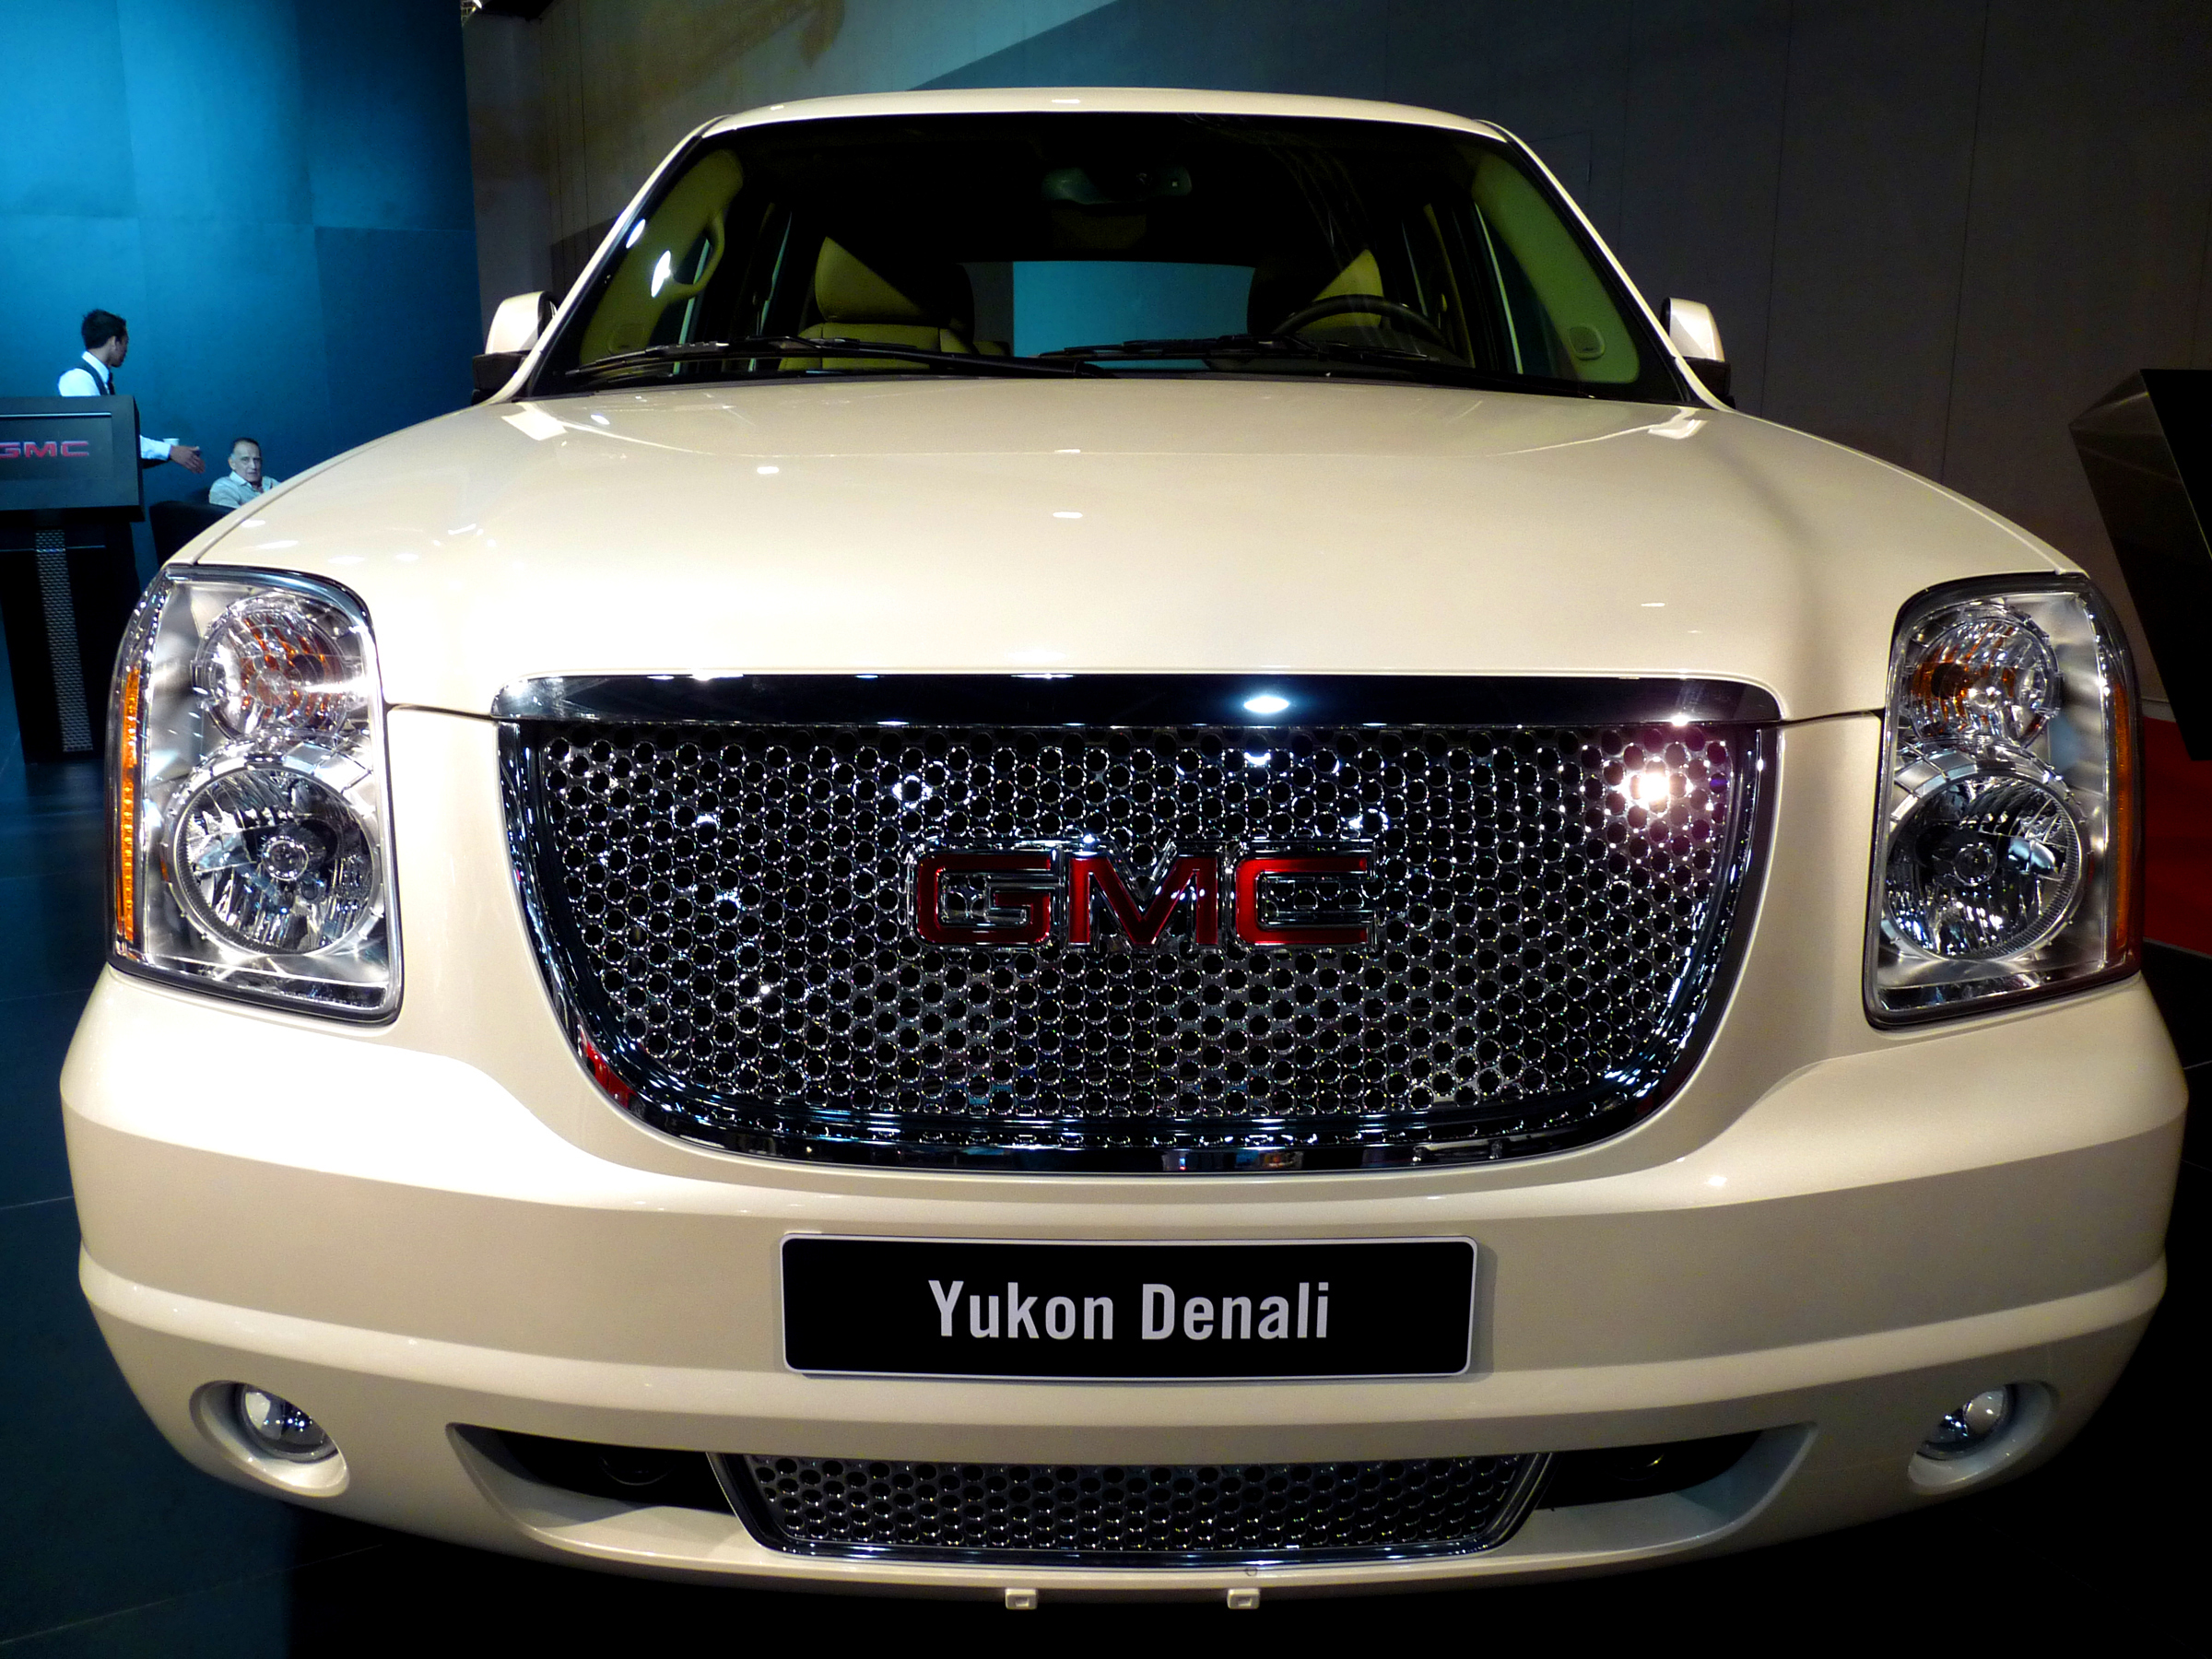 photos denali gordon gmc modification ride yukon info specs original at